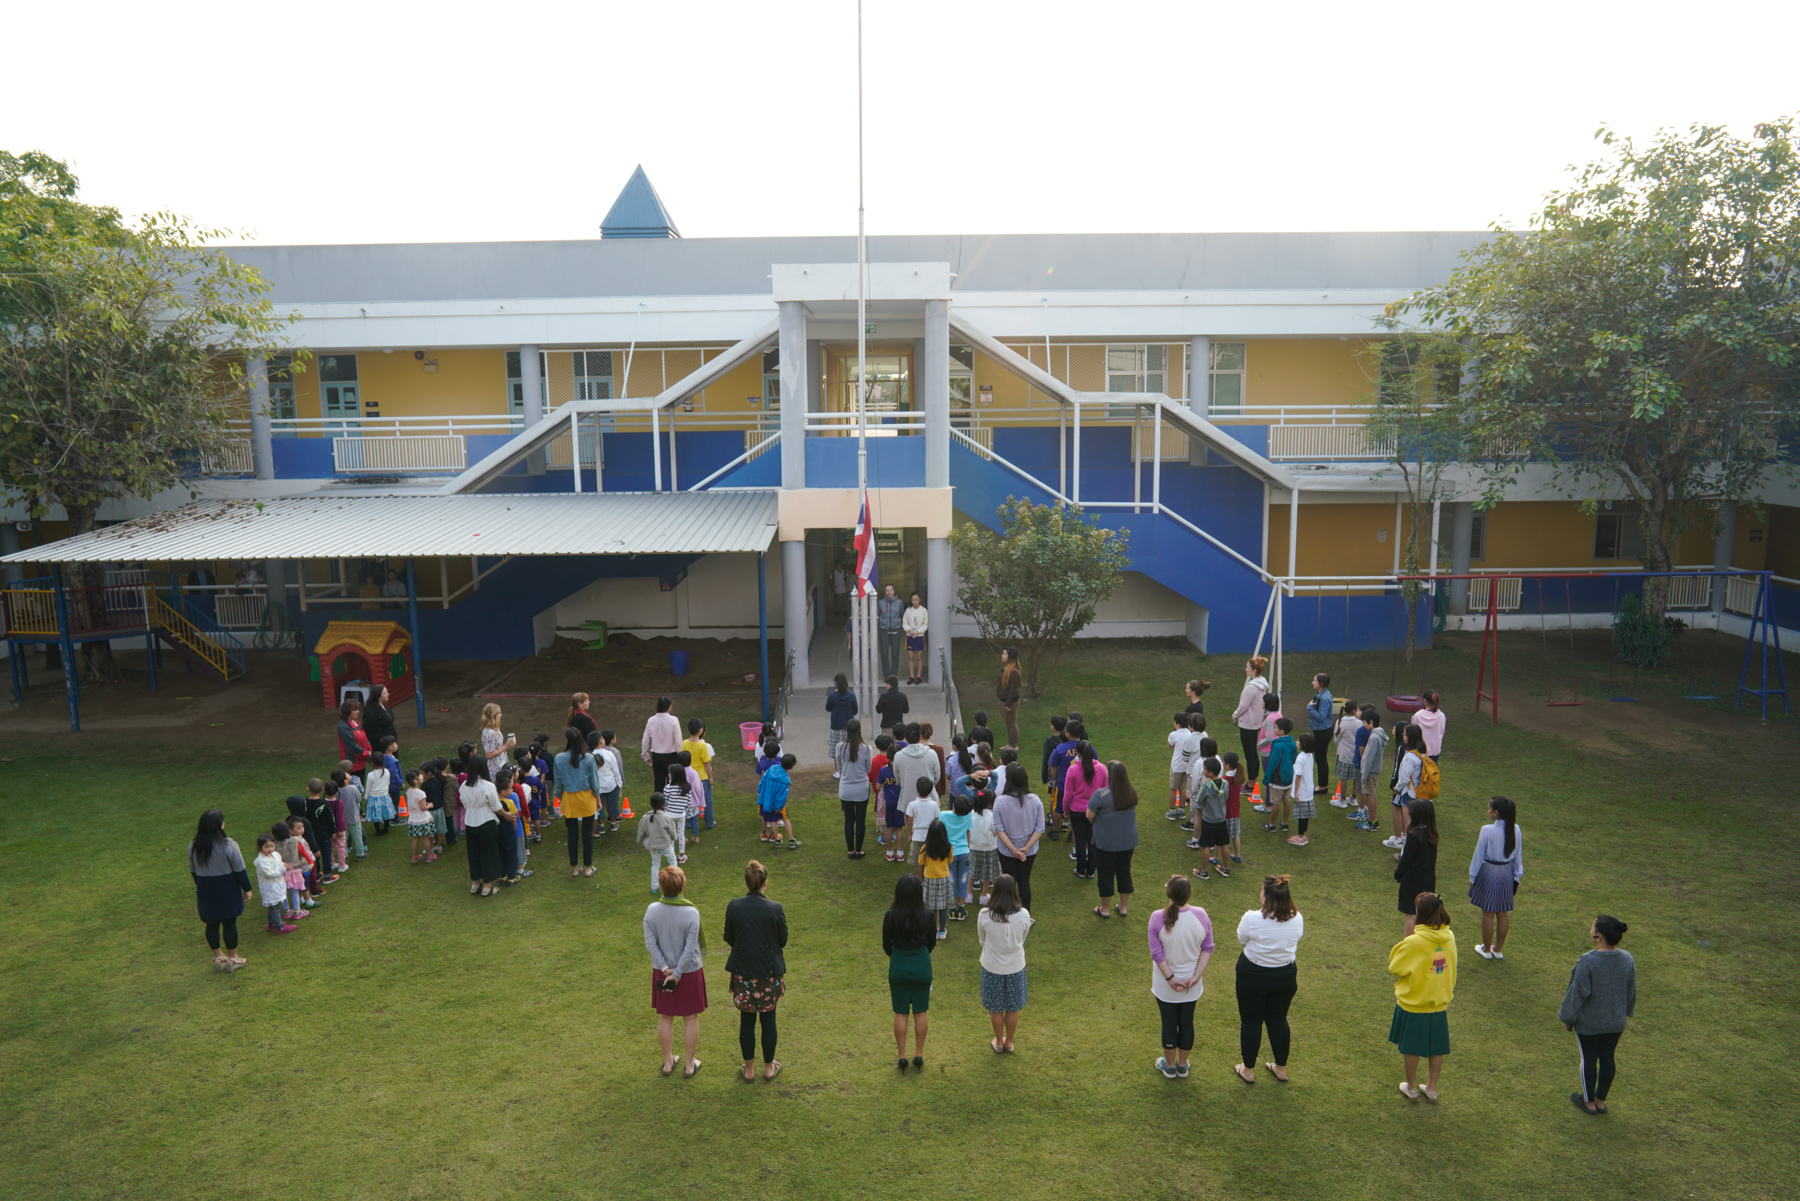 Students and teachers at the American Pacific International School (APIS) gather on the school playground to watch a flag-raising ceremony before their morning classes begin, January 24, 2019. Although schools in Chiang Mai don't release enrollment data on students' nationalities, Chinese parents there estimate that in the past few years several hundred Chinese families have migrated to the Thai city to pursue international education.